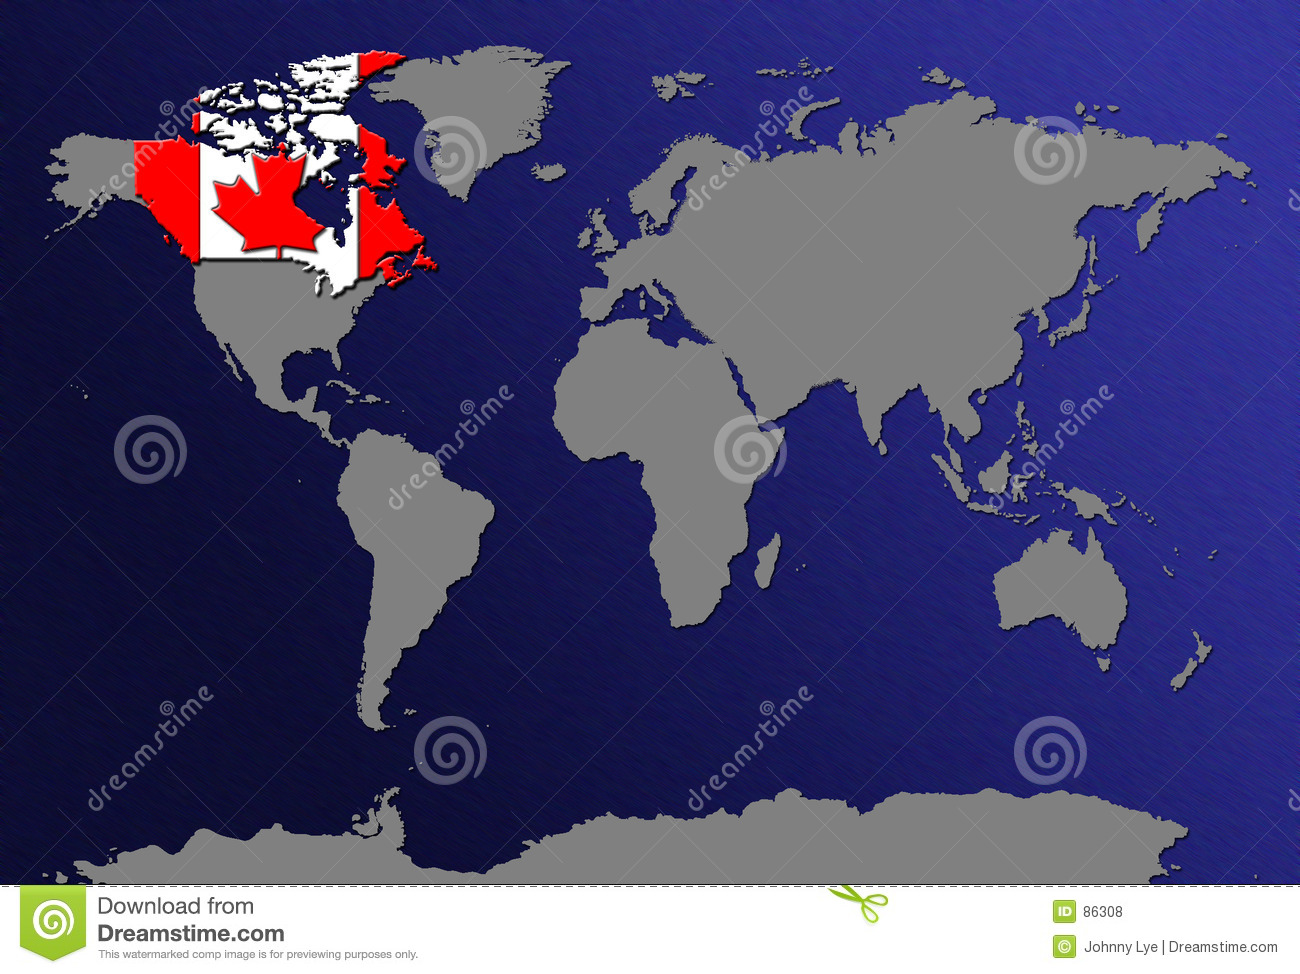 World map with flags stock illustration illustration of geography world map with flags gumiabroncs Choice Image